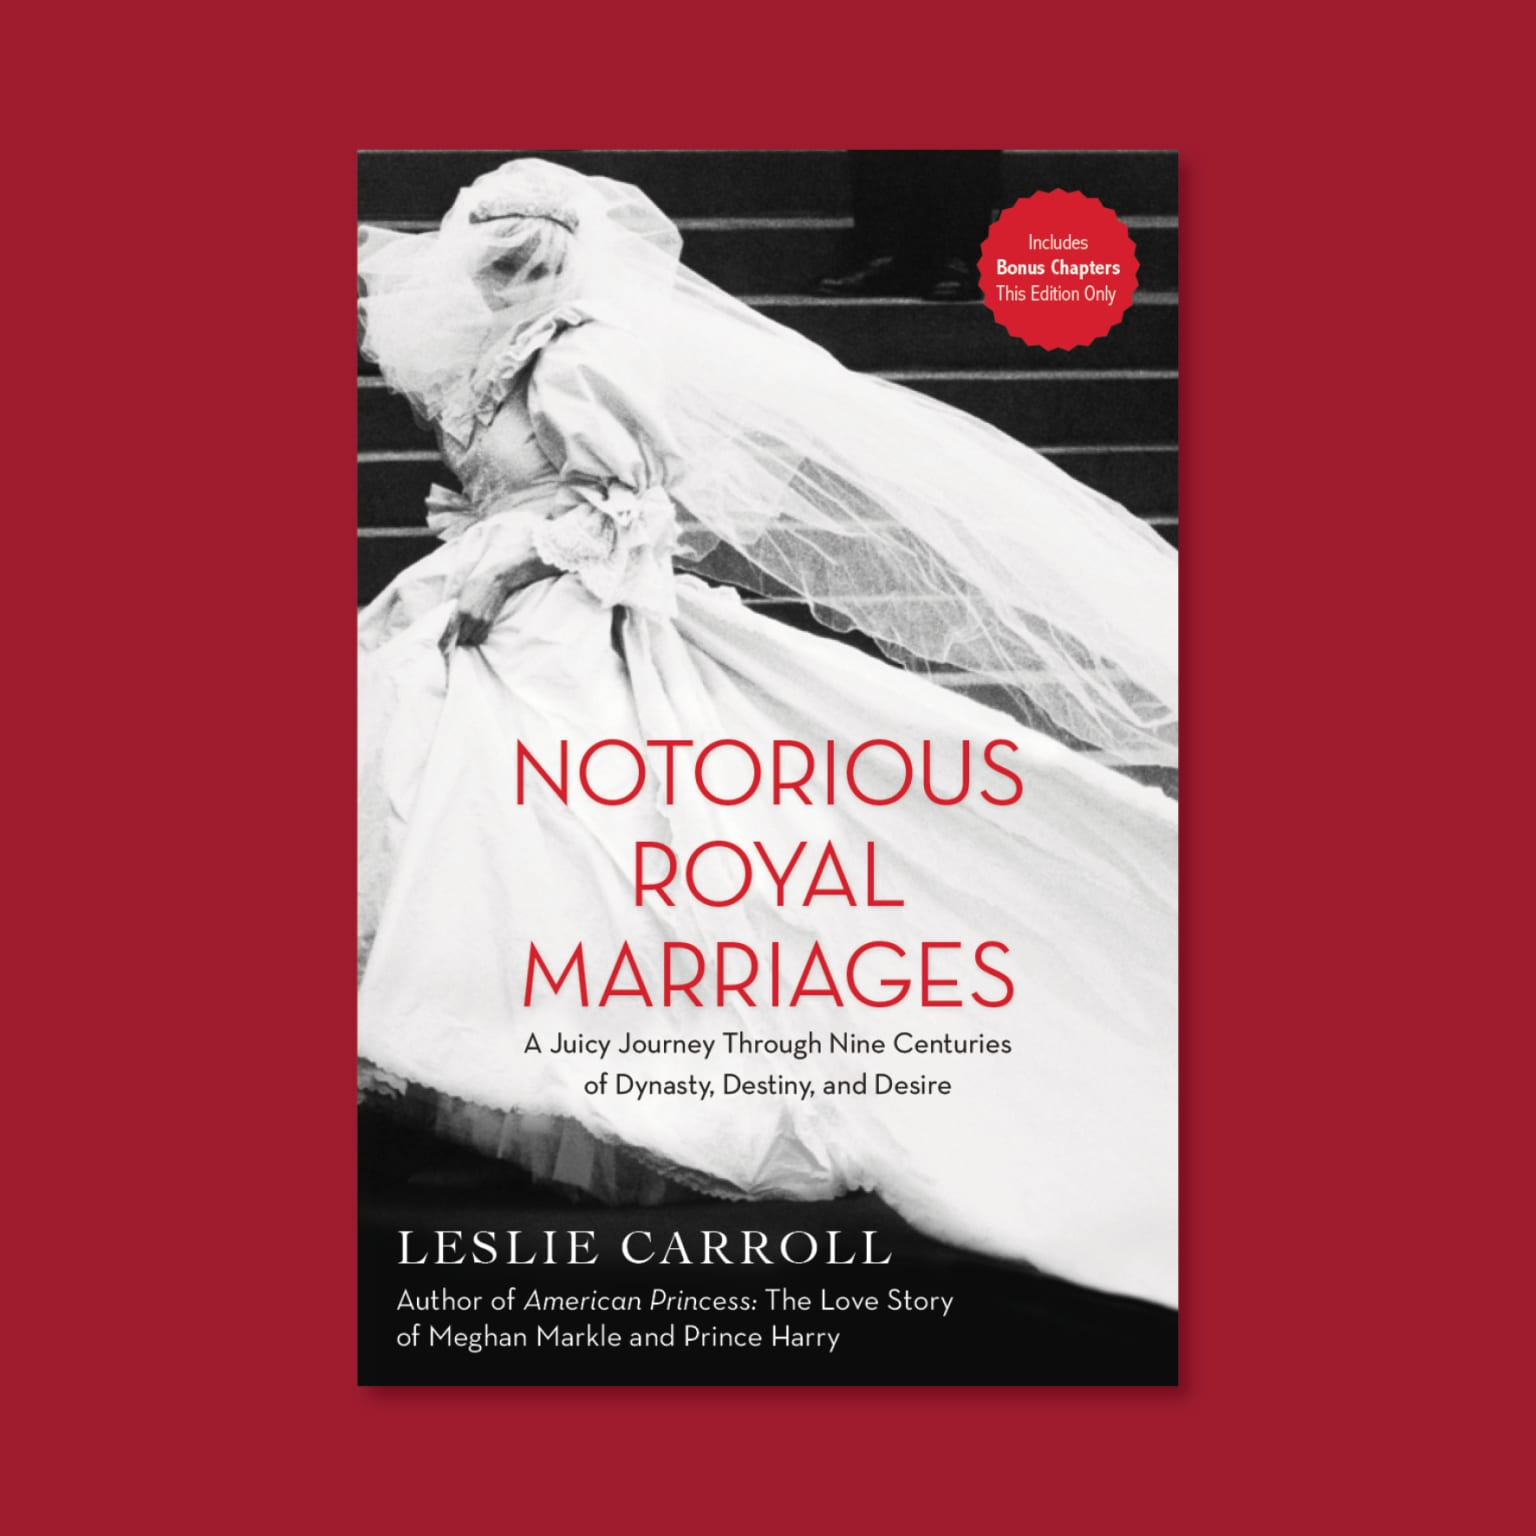 Notorious Royal Marriages Book Cover Design